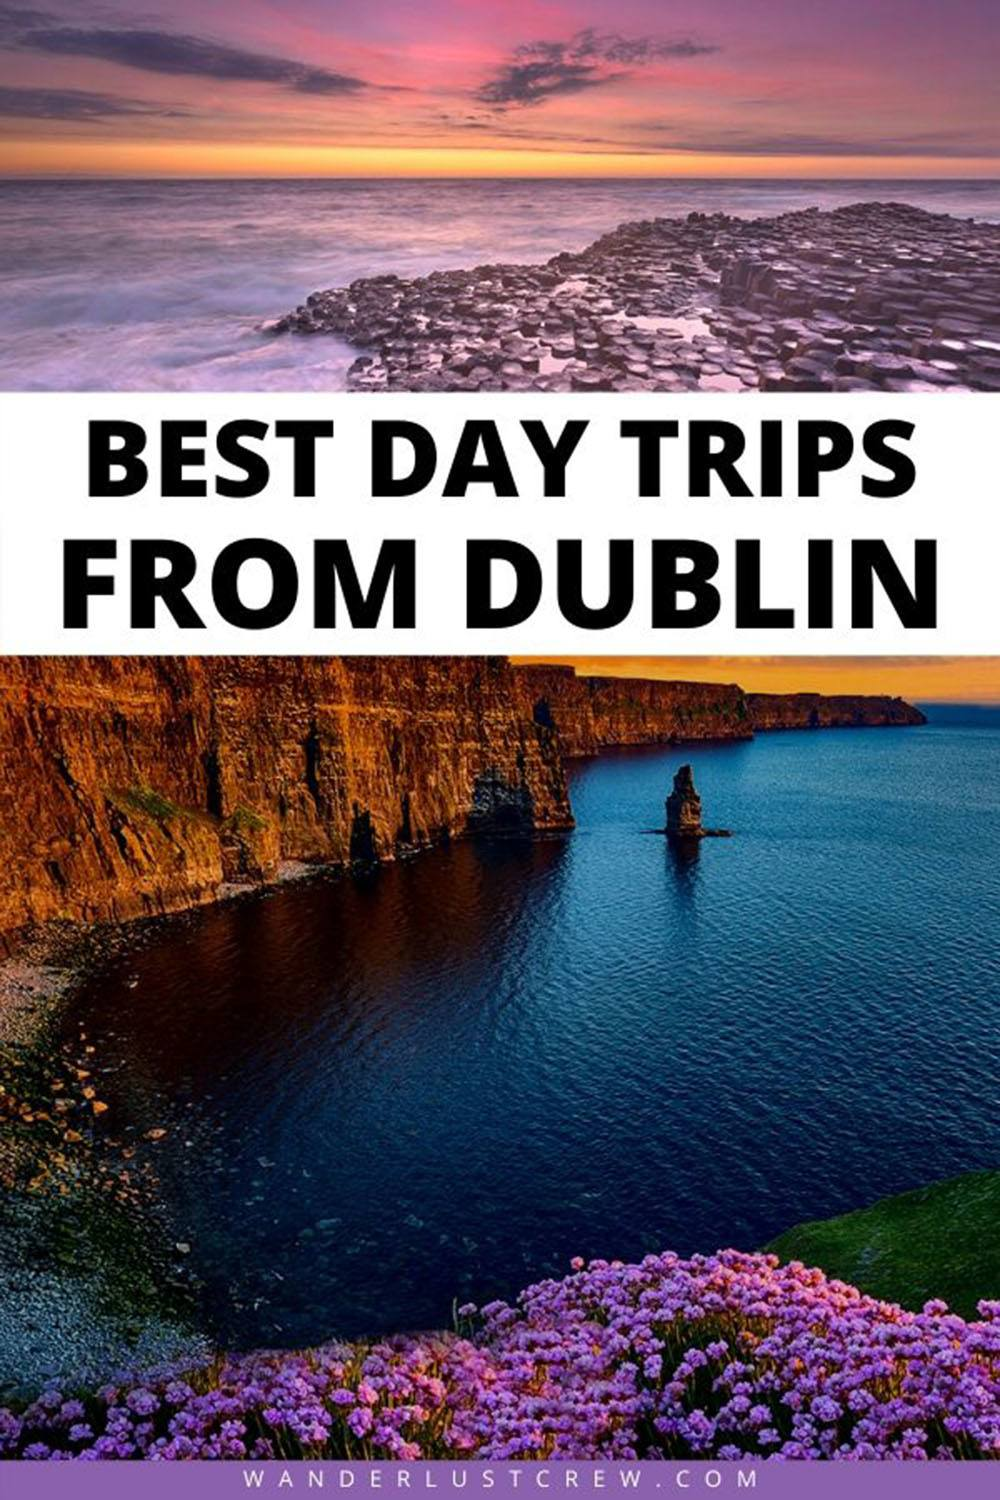 If you plan to base yourself in Dublin for your Ireland vacation, you'll want to venture out a bit. These are my favorite day trips from Dublin.